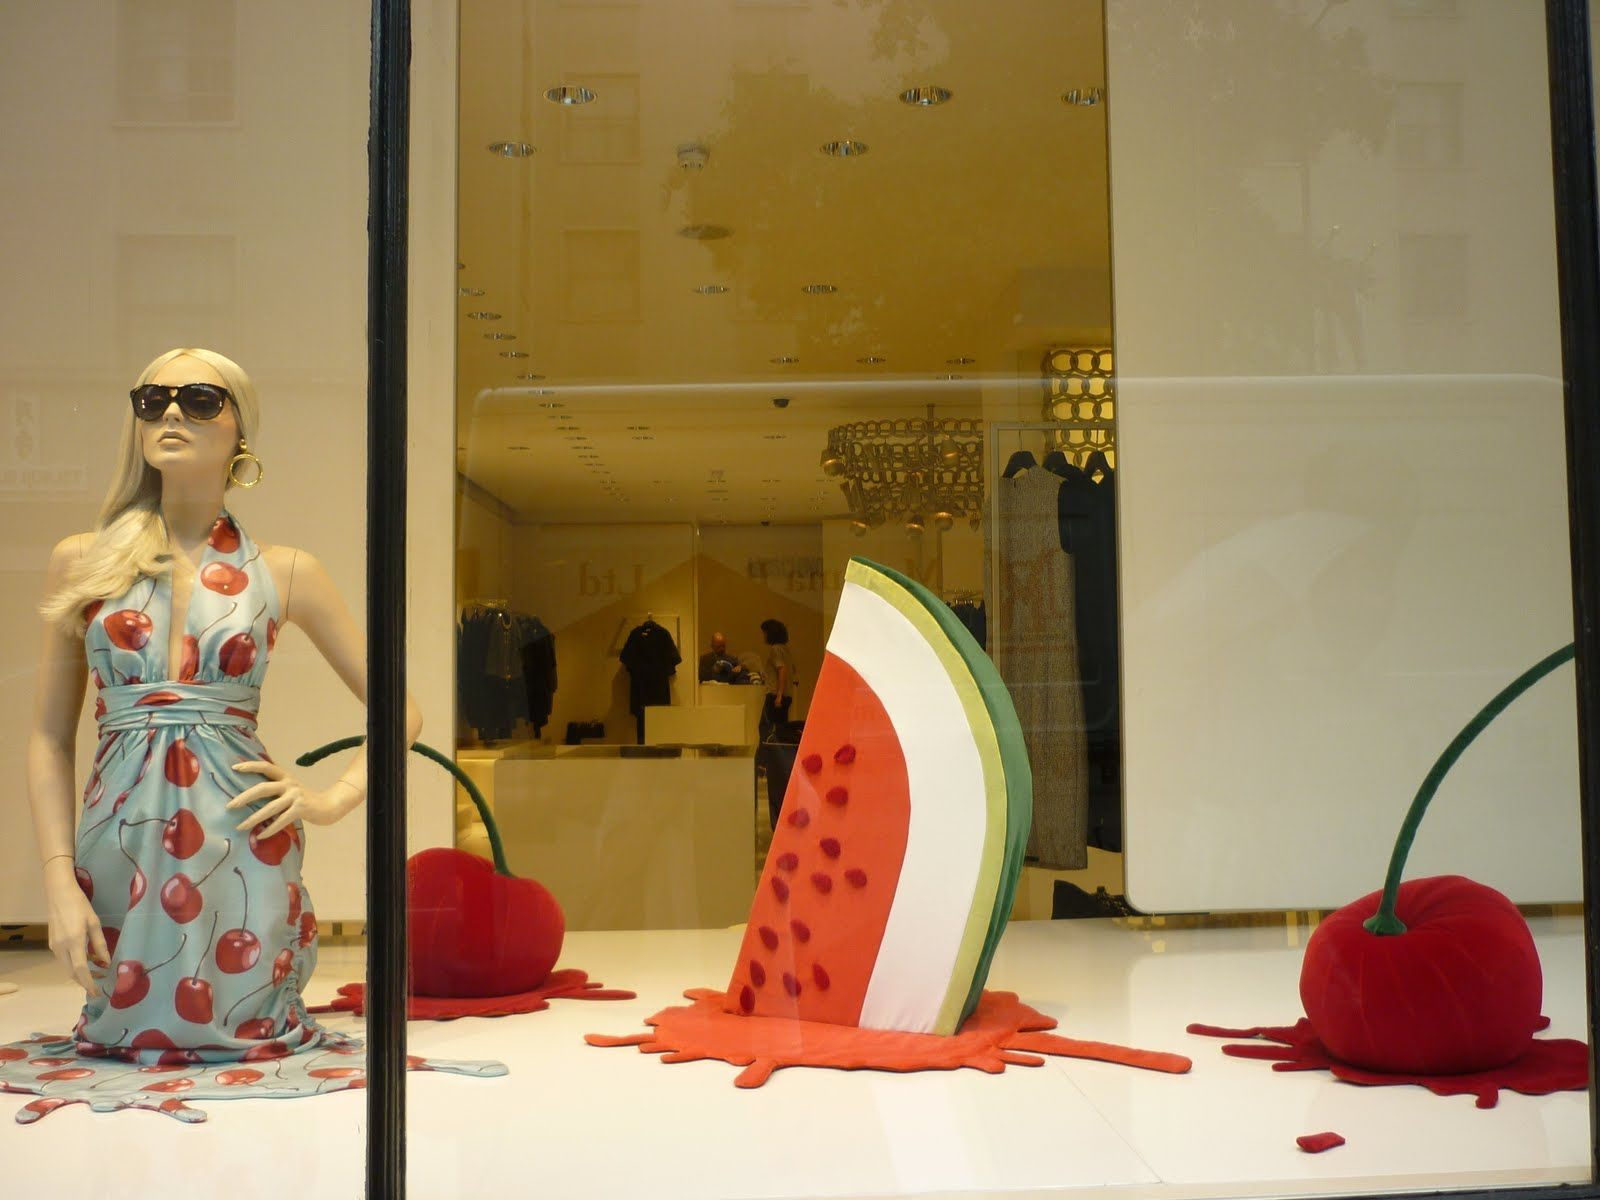 Visual Merchandising Display Project - Lessons - Tes Teach